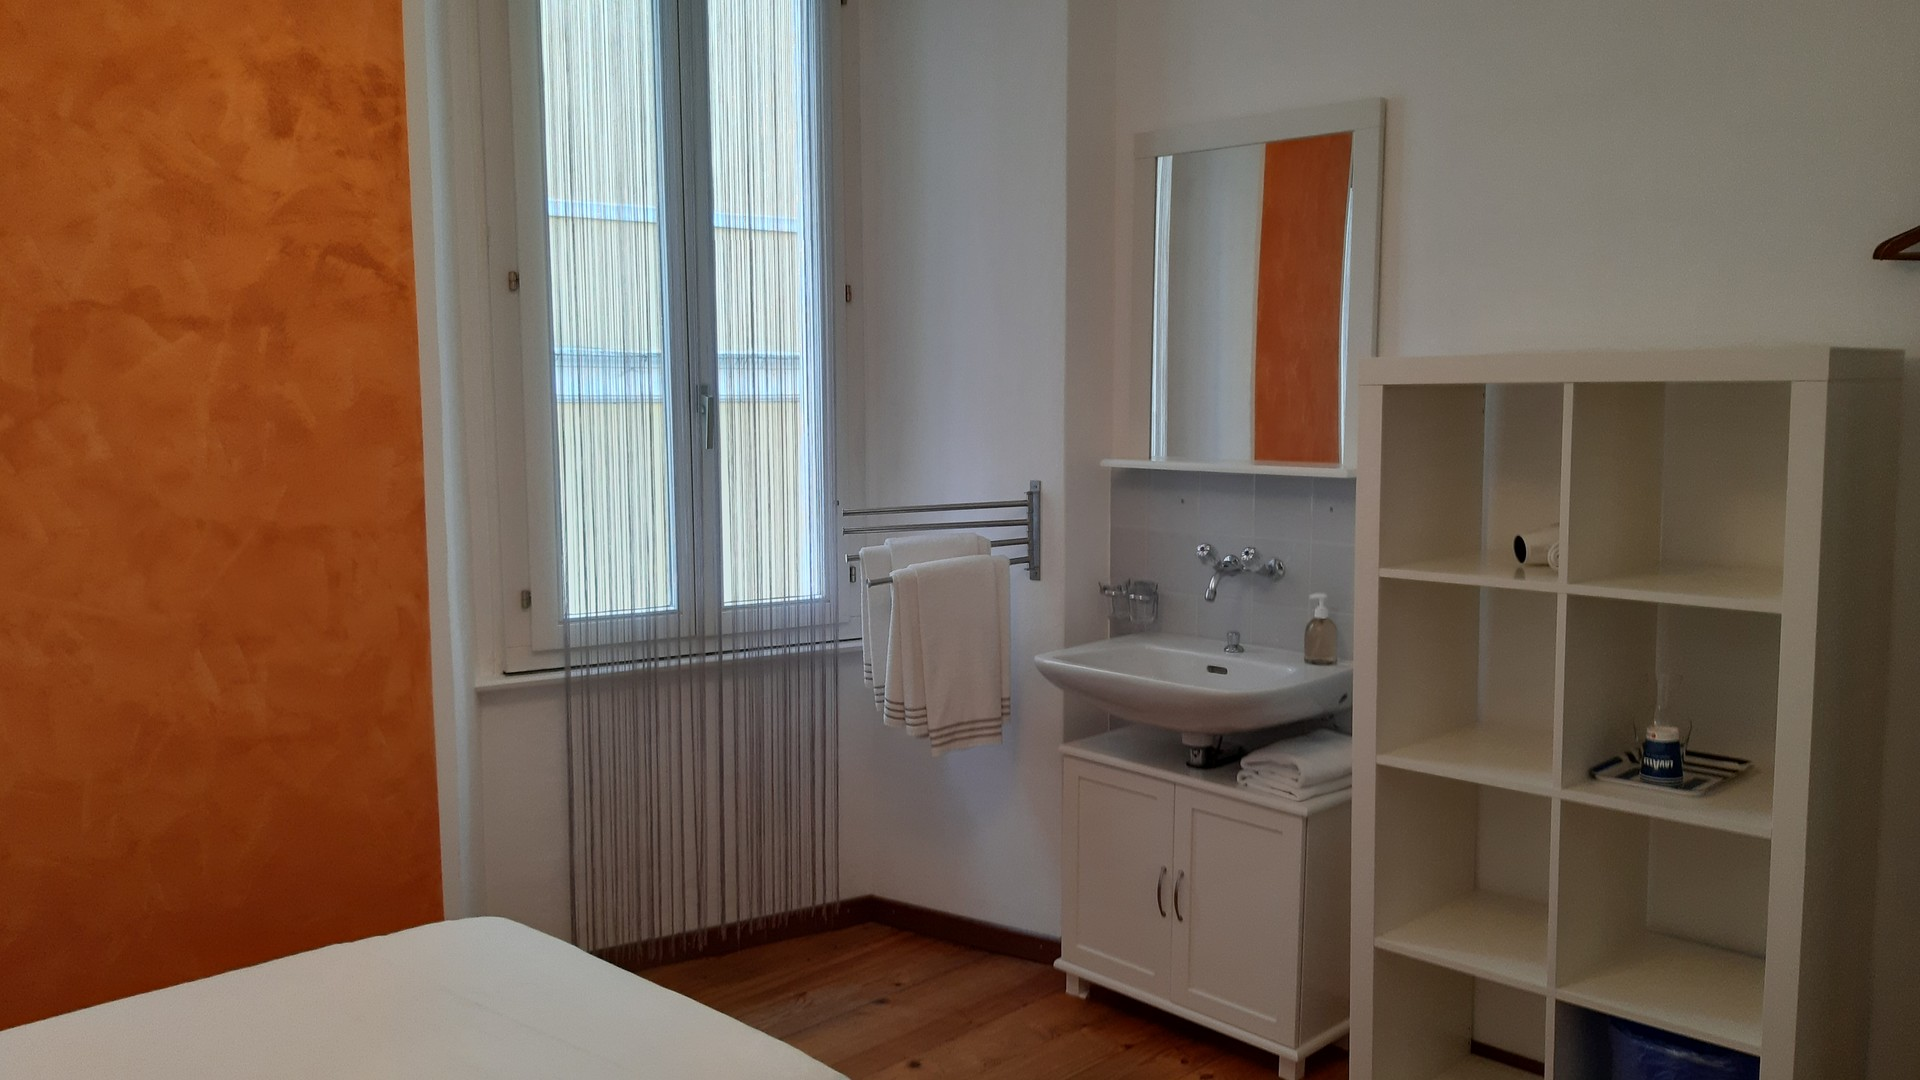 Single Room With Shared Bad 1 Each 2 Rooms Room For Rent Locarno